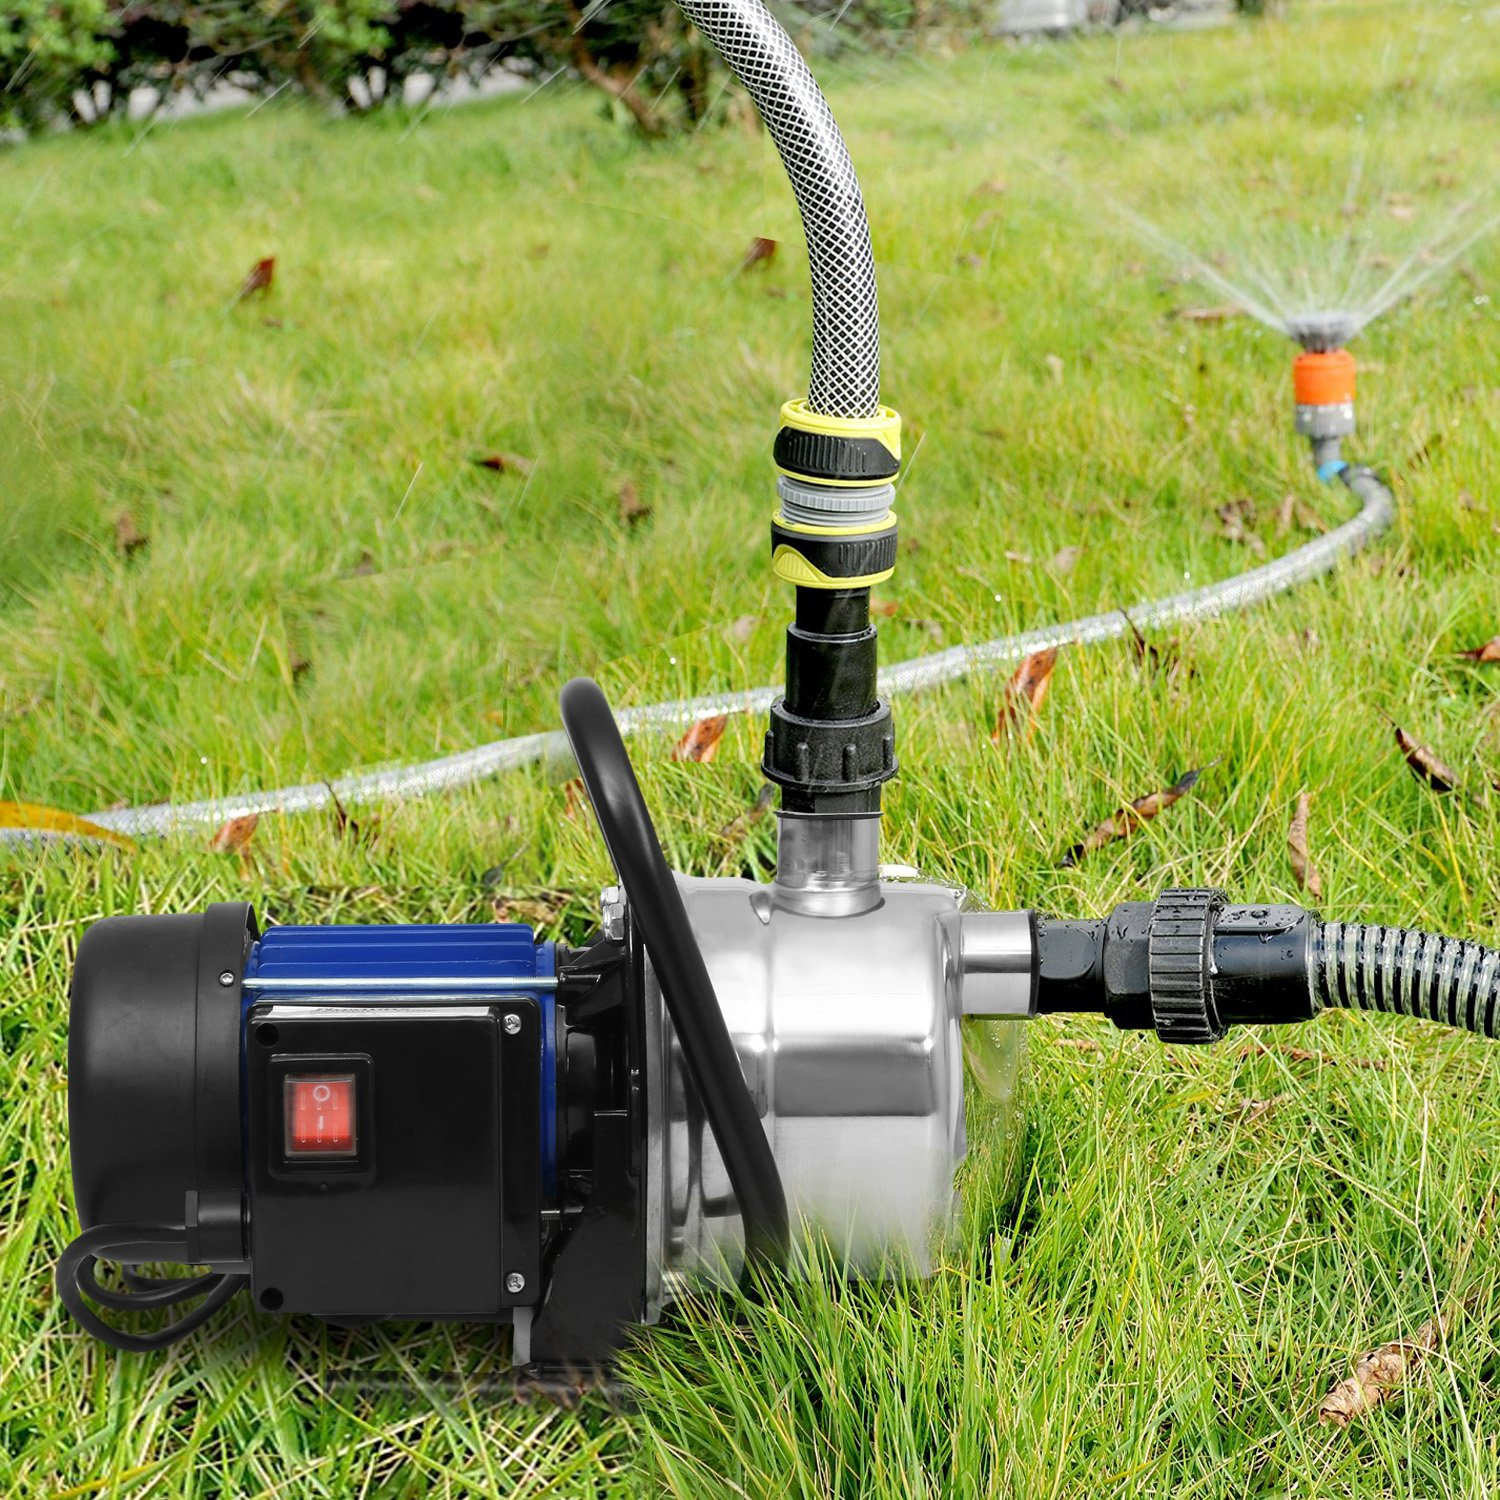 1.6HP Shallow Well Sump Pump Stainless Booster Pump Lawn Water Pump Electric Water Transfer Home Garden Irrigation(1.6 HP_Blue) by Flyerstoy